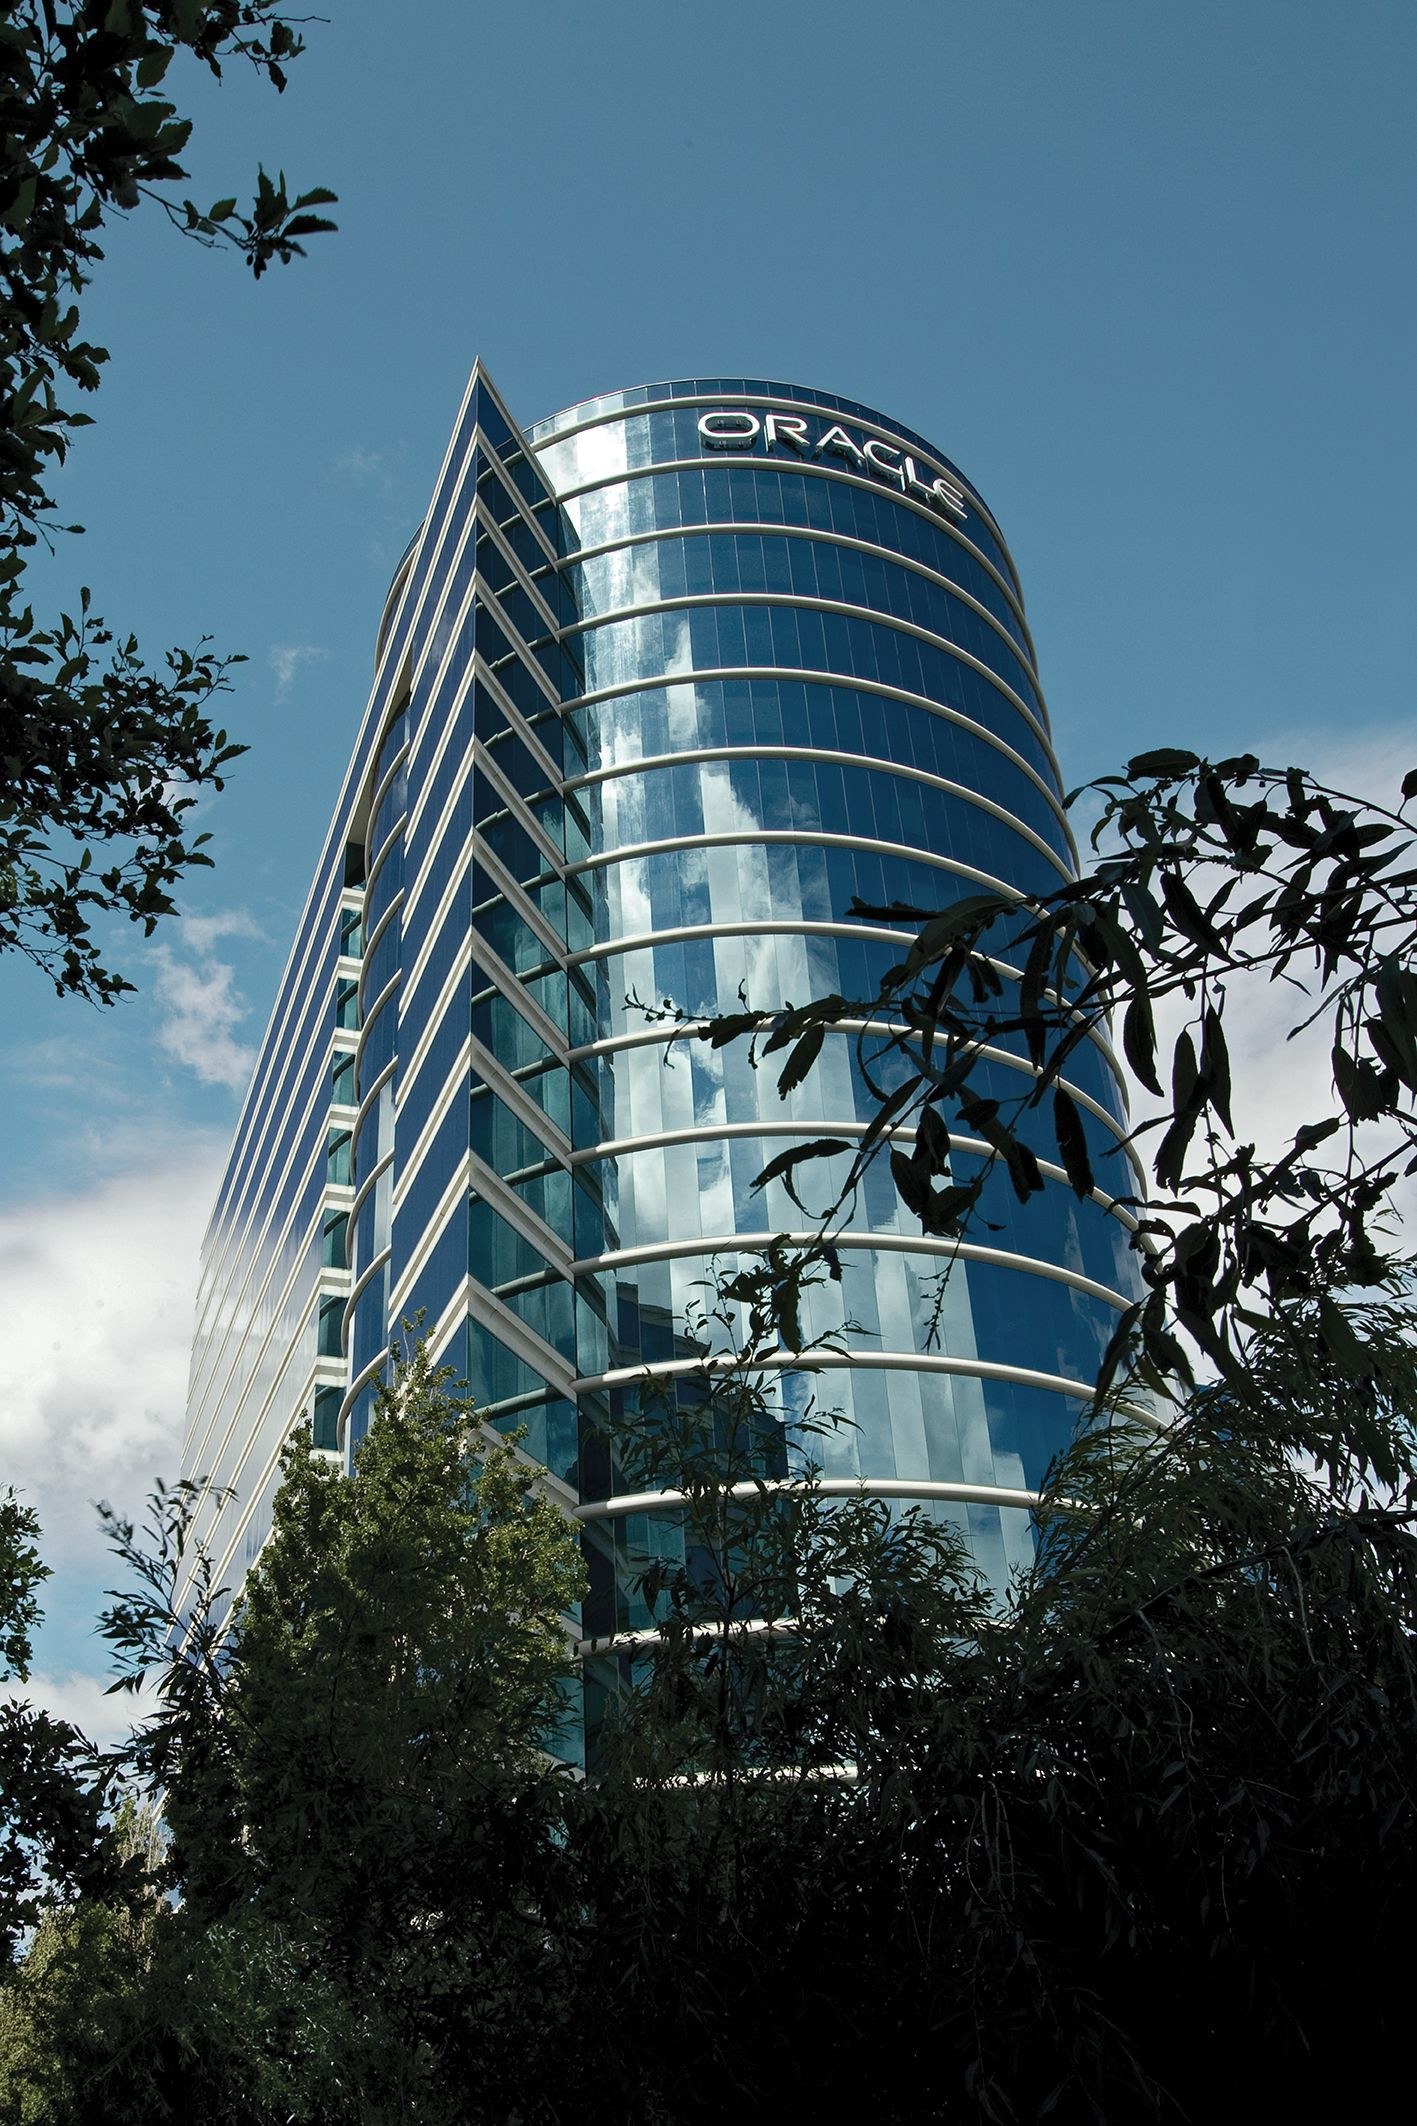 Oracle is a marketing company not a tech company